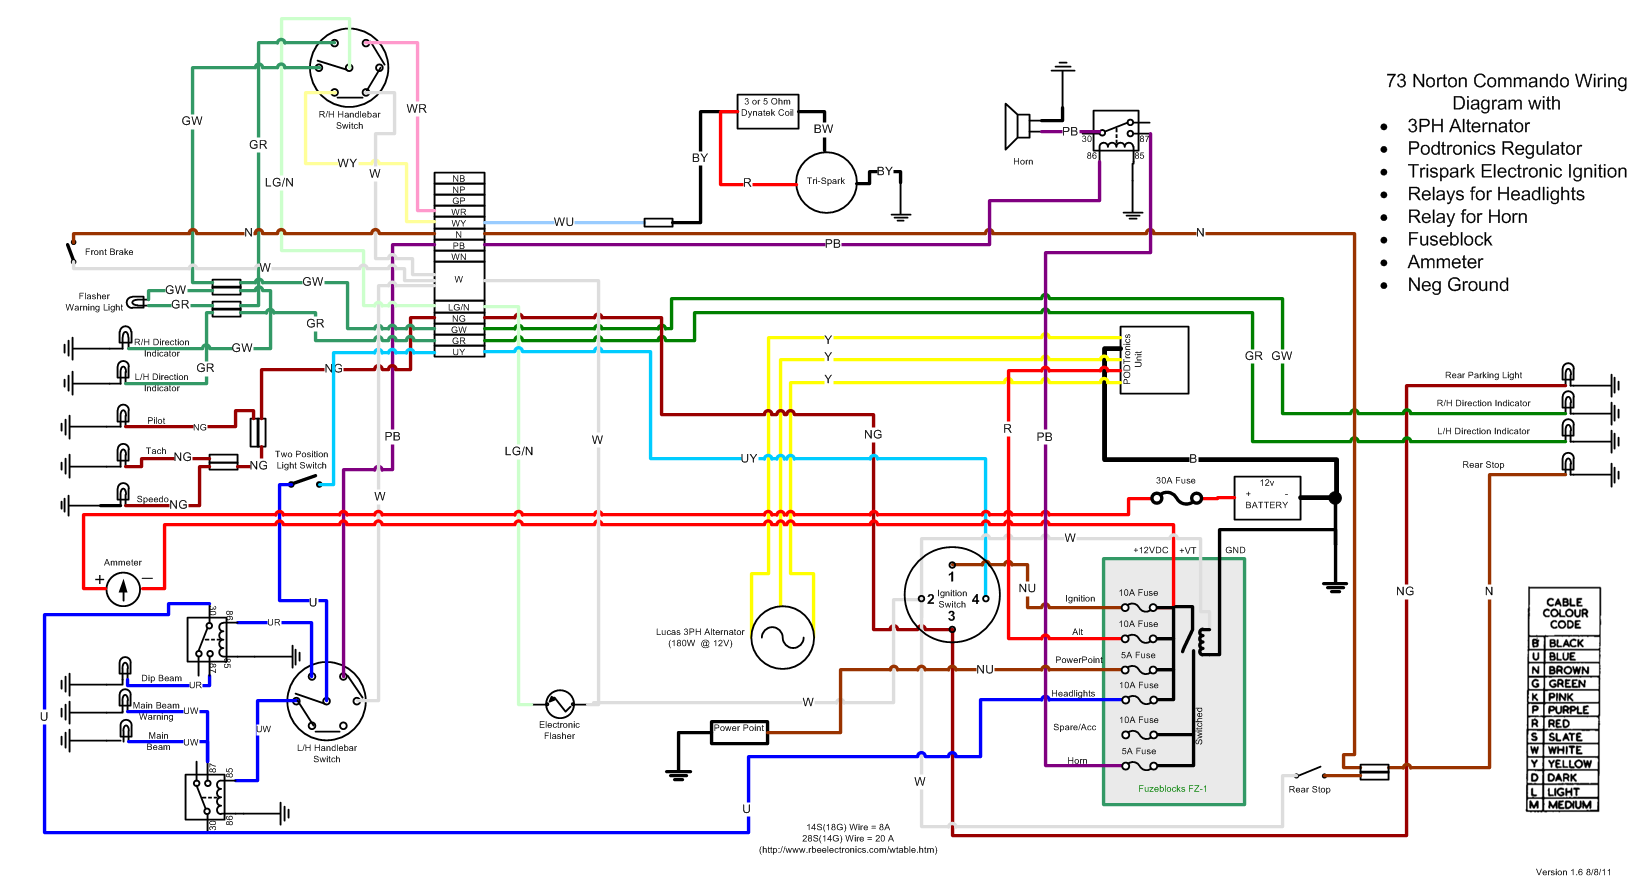 Free Electrical Wiring Diagrams : Electrical wiring diagrams for dummies get free image